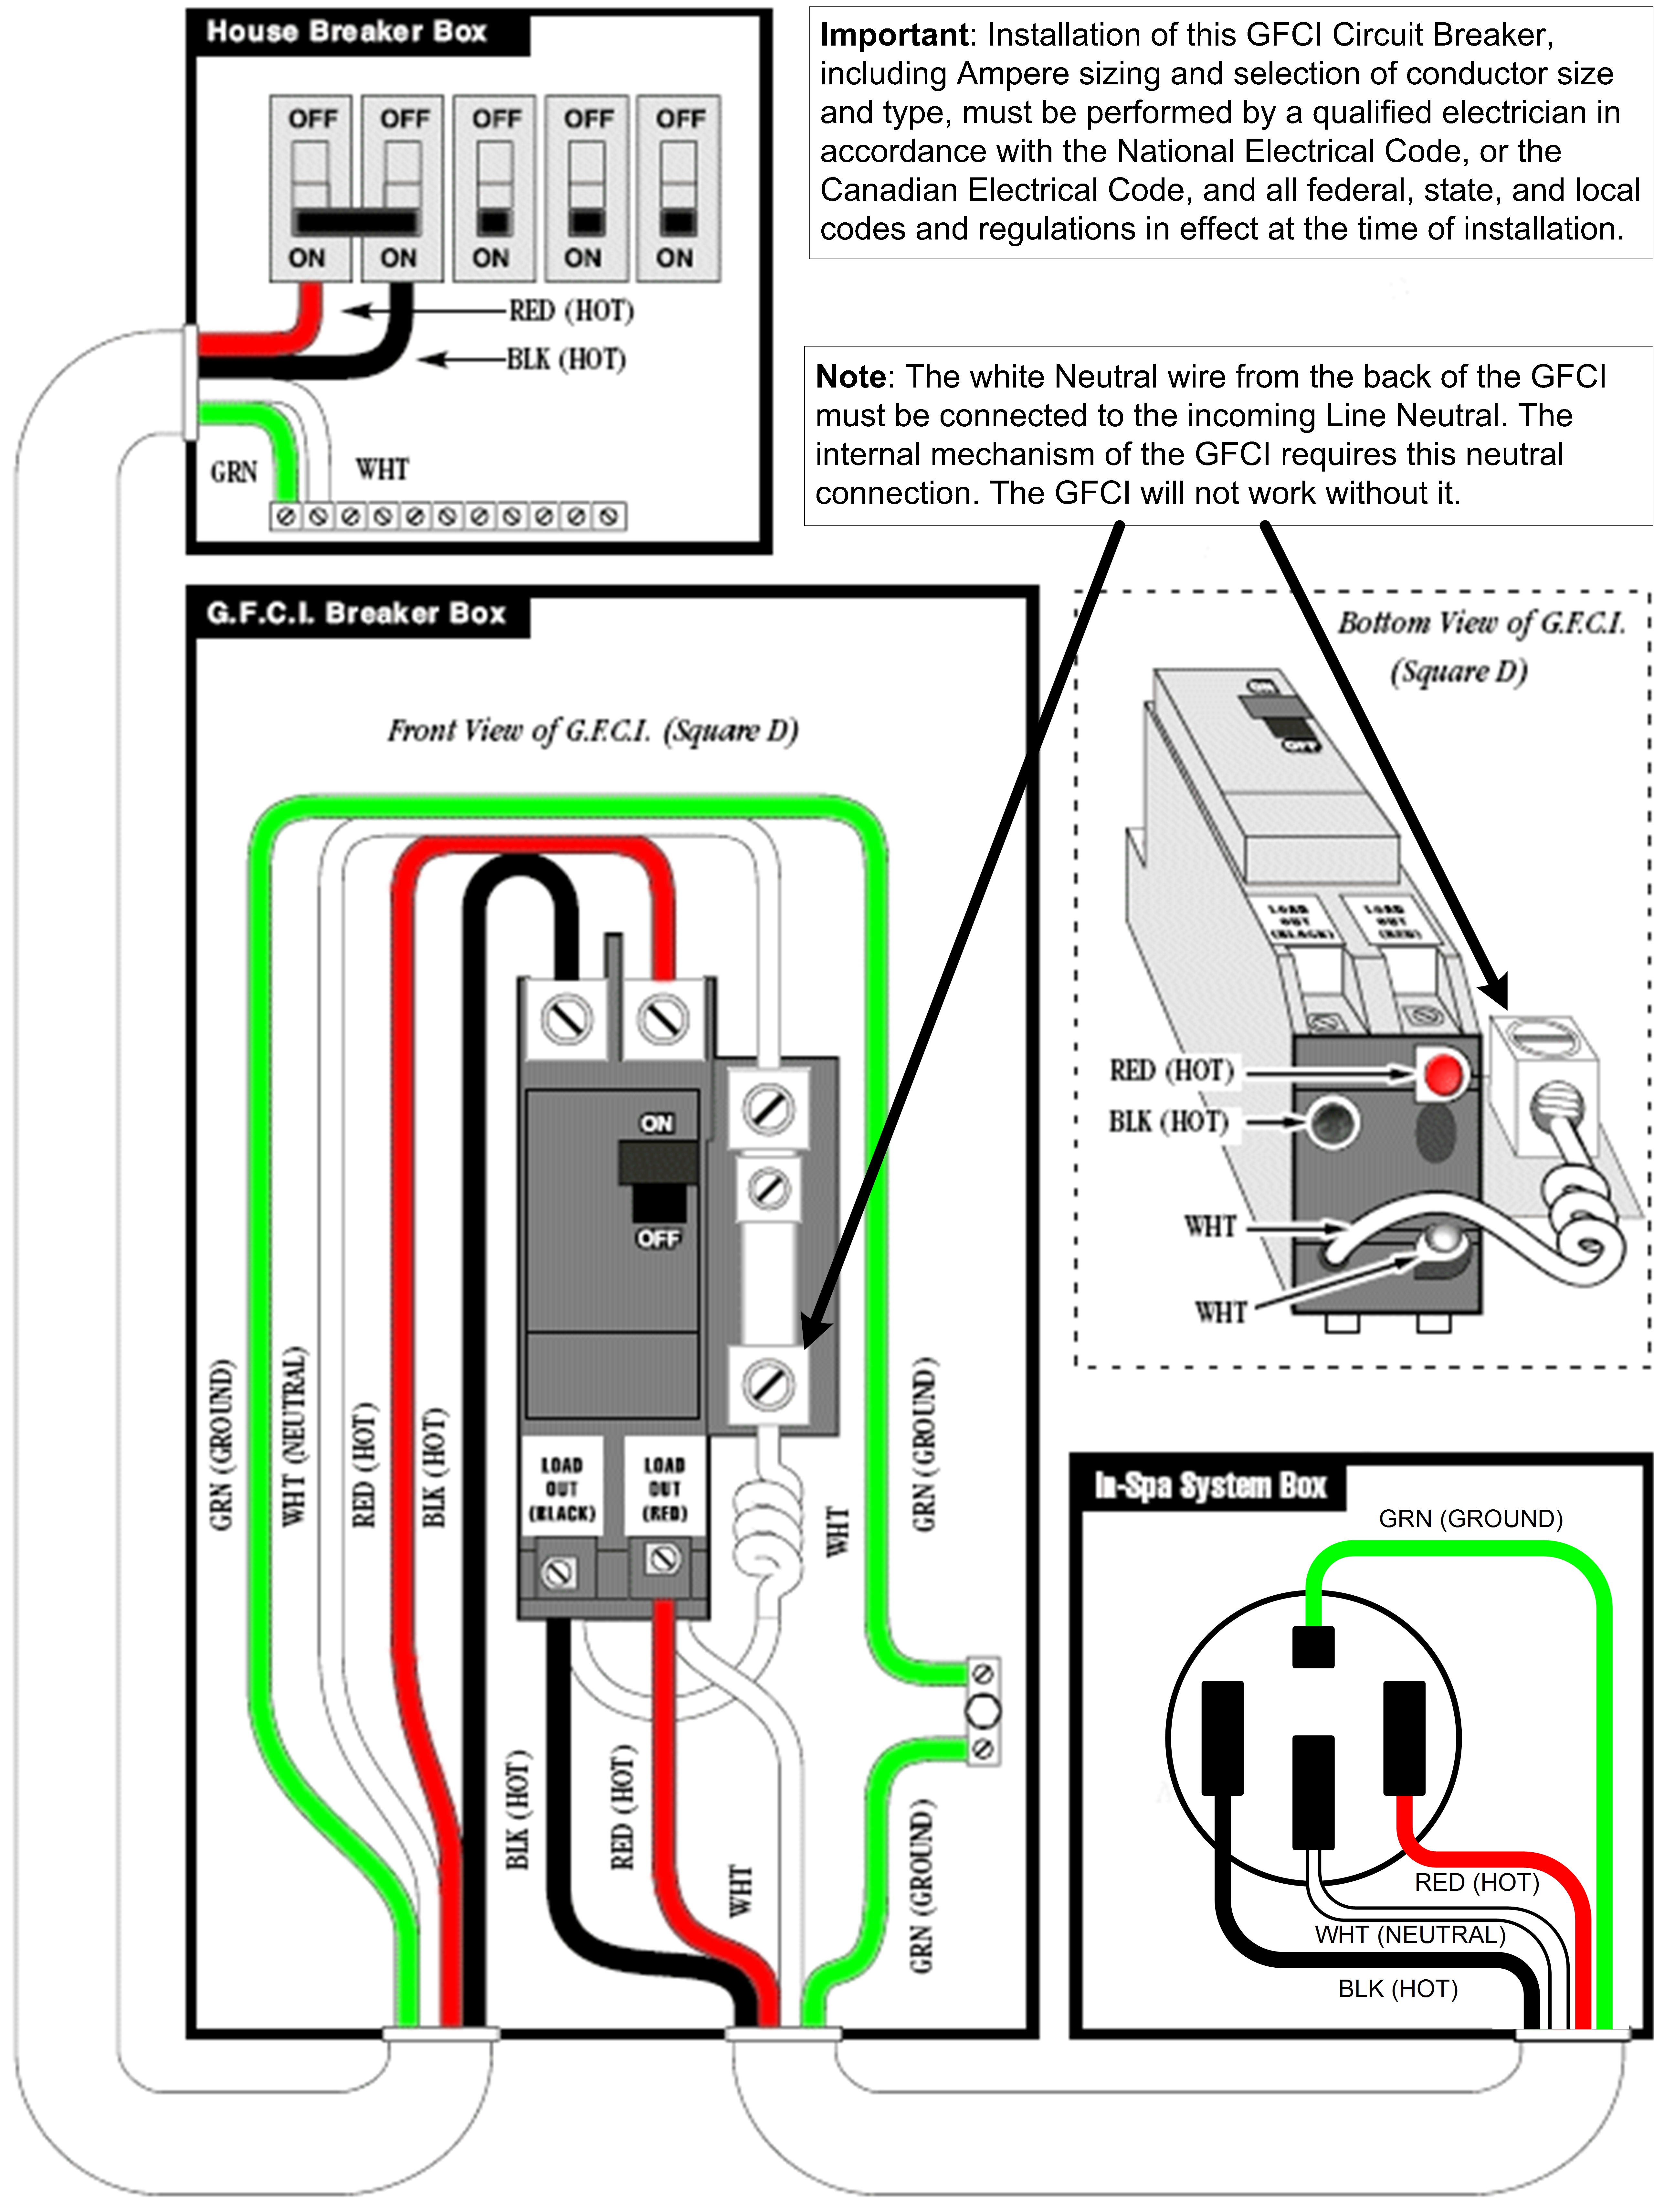 Wiring 240V Gfci Breaker - Creative Wiring Diagram Templates • - 2 Pole Gfci Breaker Wiring Diagram